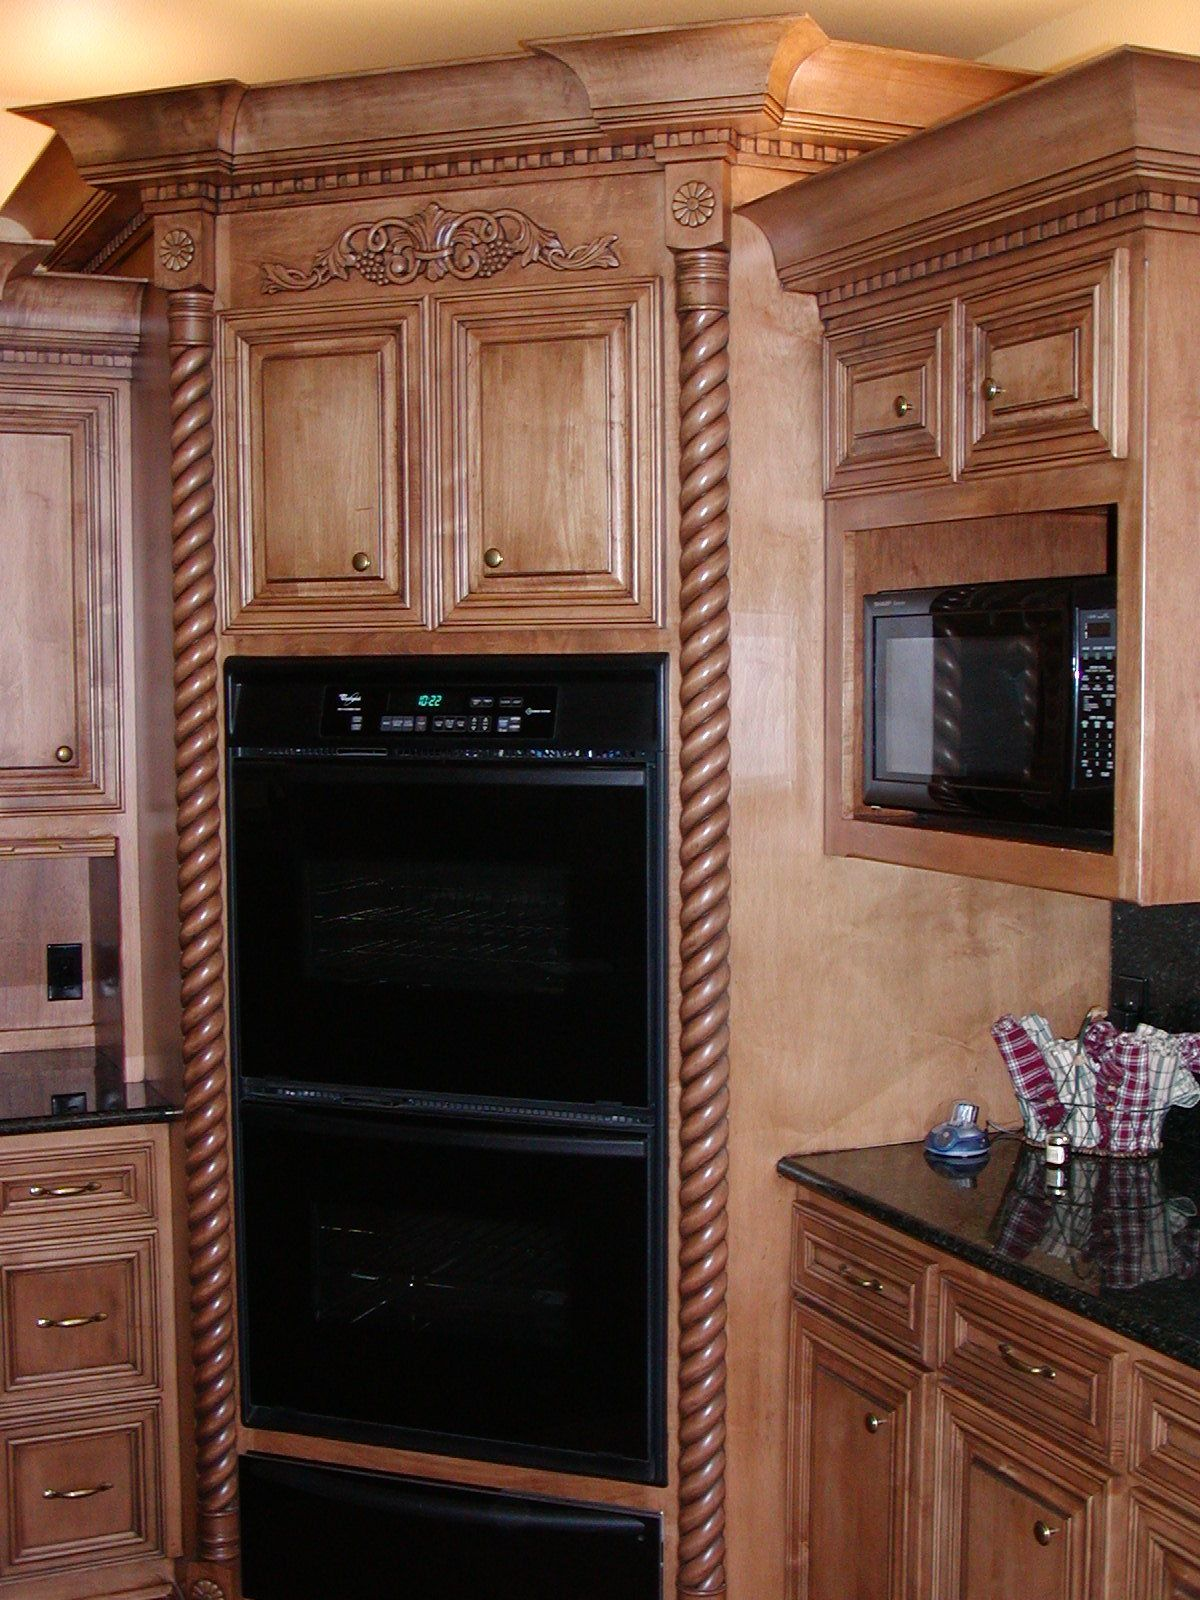 custom wall oven cabinets with rope trim by texas wood mill cabinets oven cabinet cabinet on kitchen cabinets trim id=62910